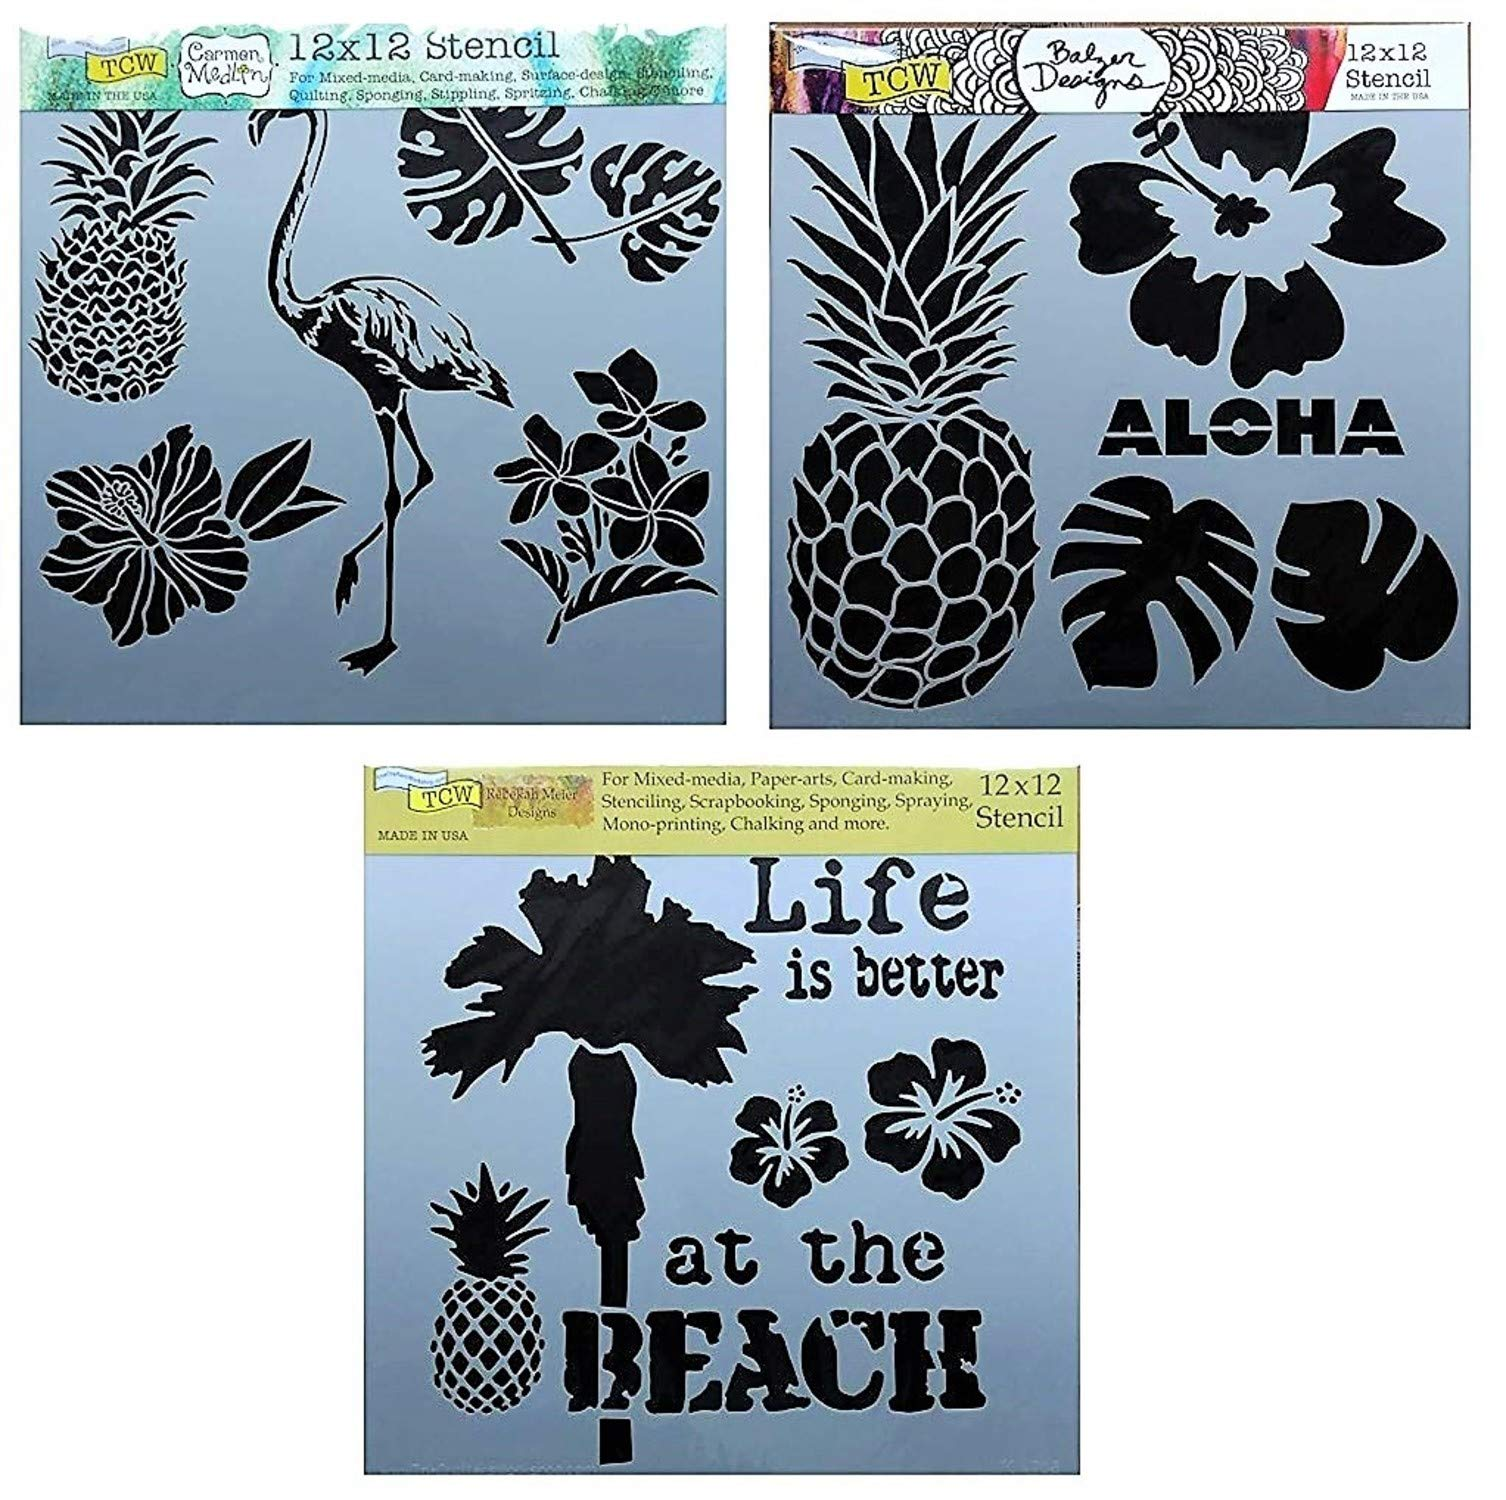 3 Tropical Style Flamingo, Pineapple, Palm Tree and Leaf Themed Stencils | Large Mixed Media Stencil Set for Arts, Card Making, Journaling, Scrapbooking | 12 x 12 Inch Templates | By Crafters Workshop